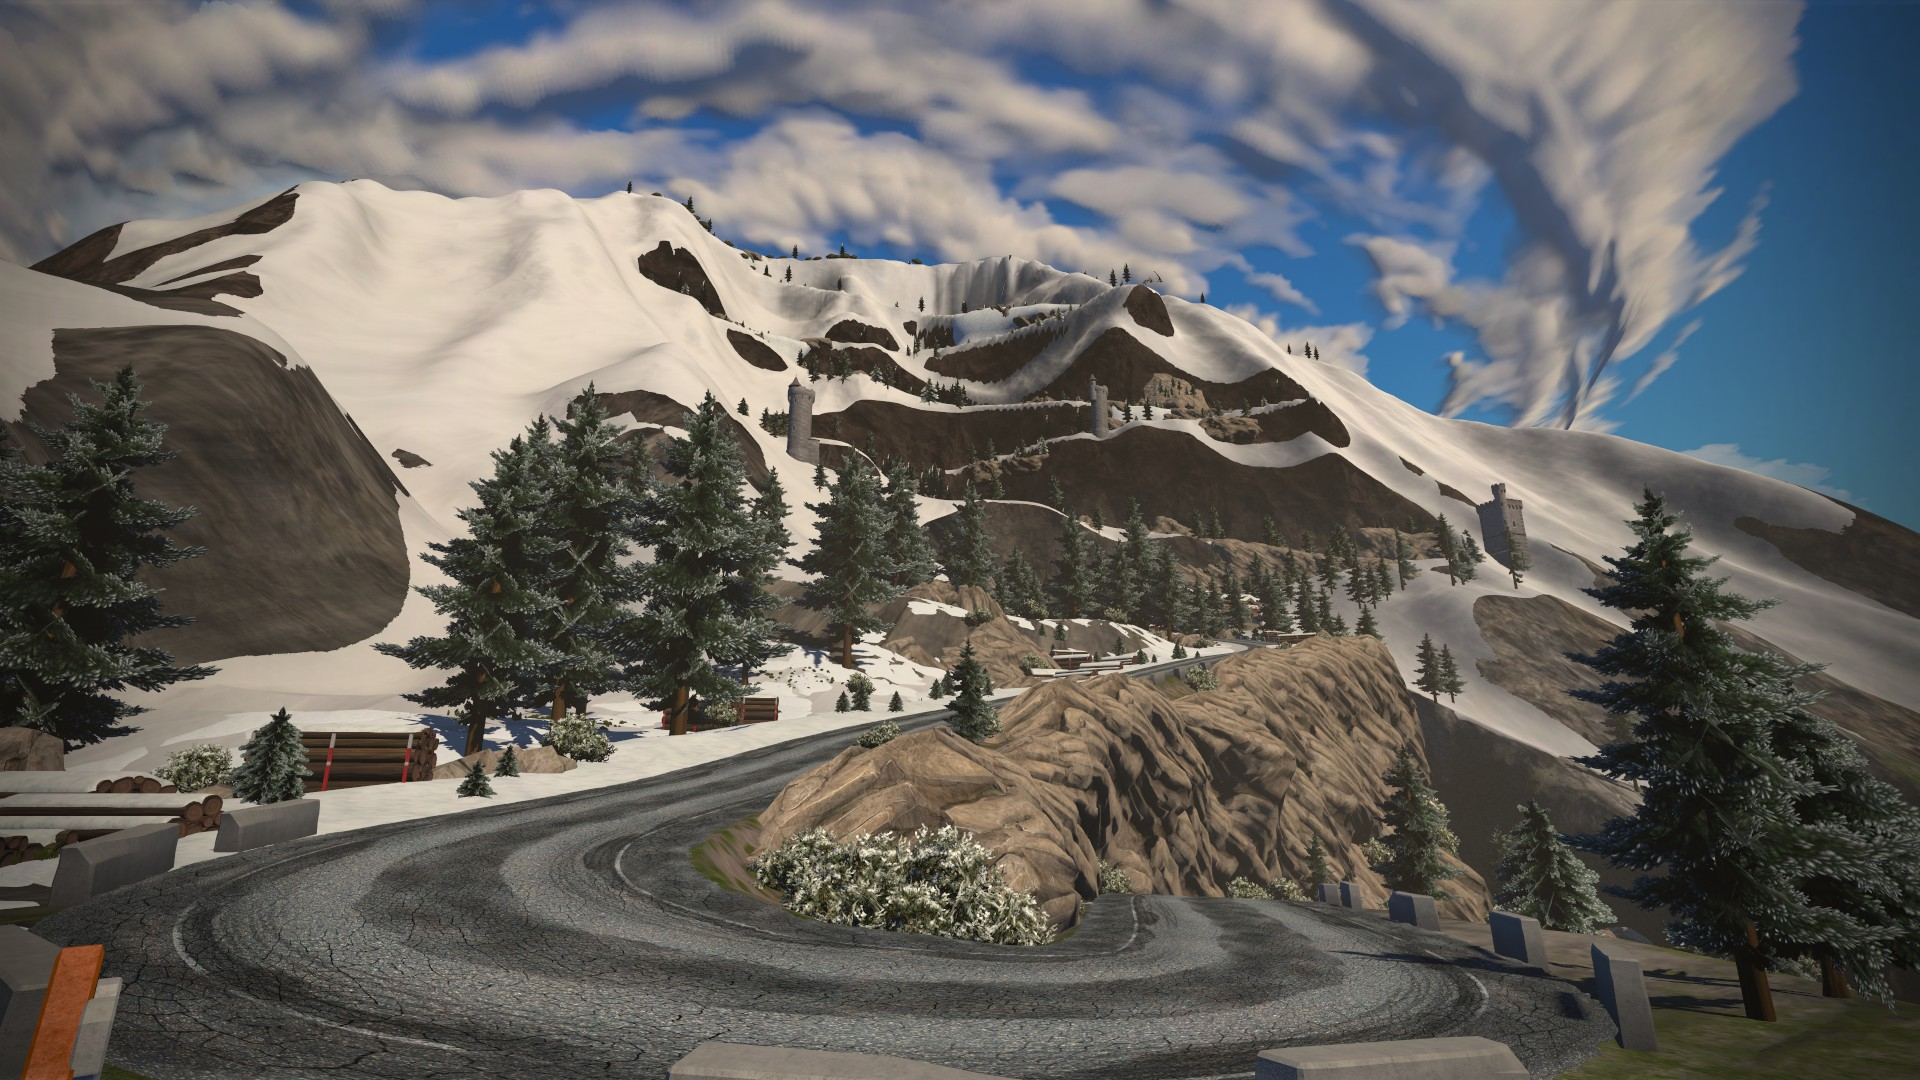 Zwift's new Alpe d'Huez climb